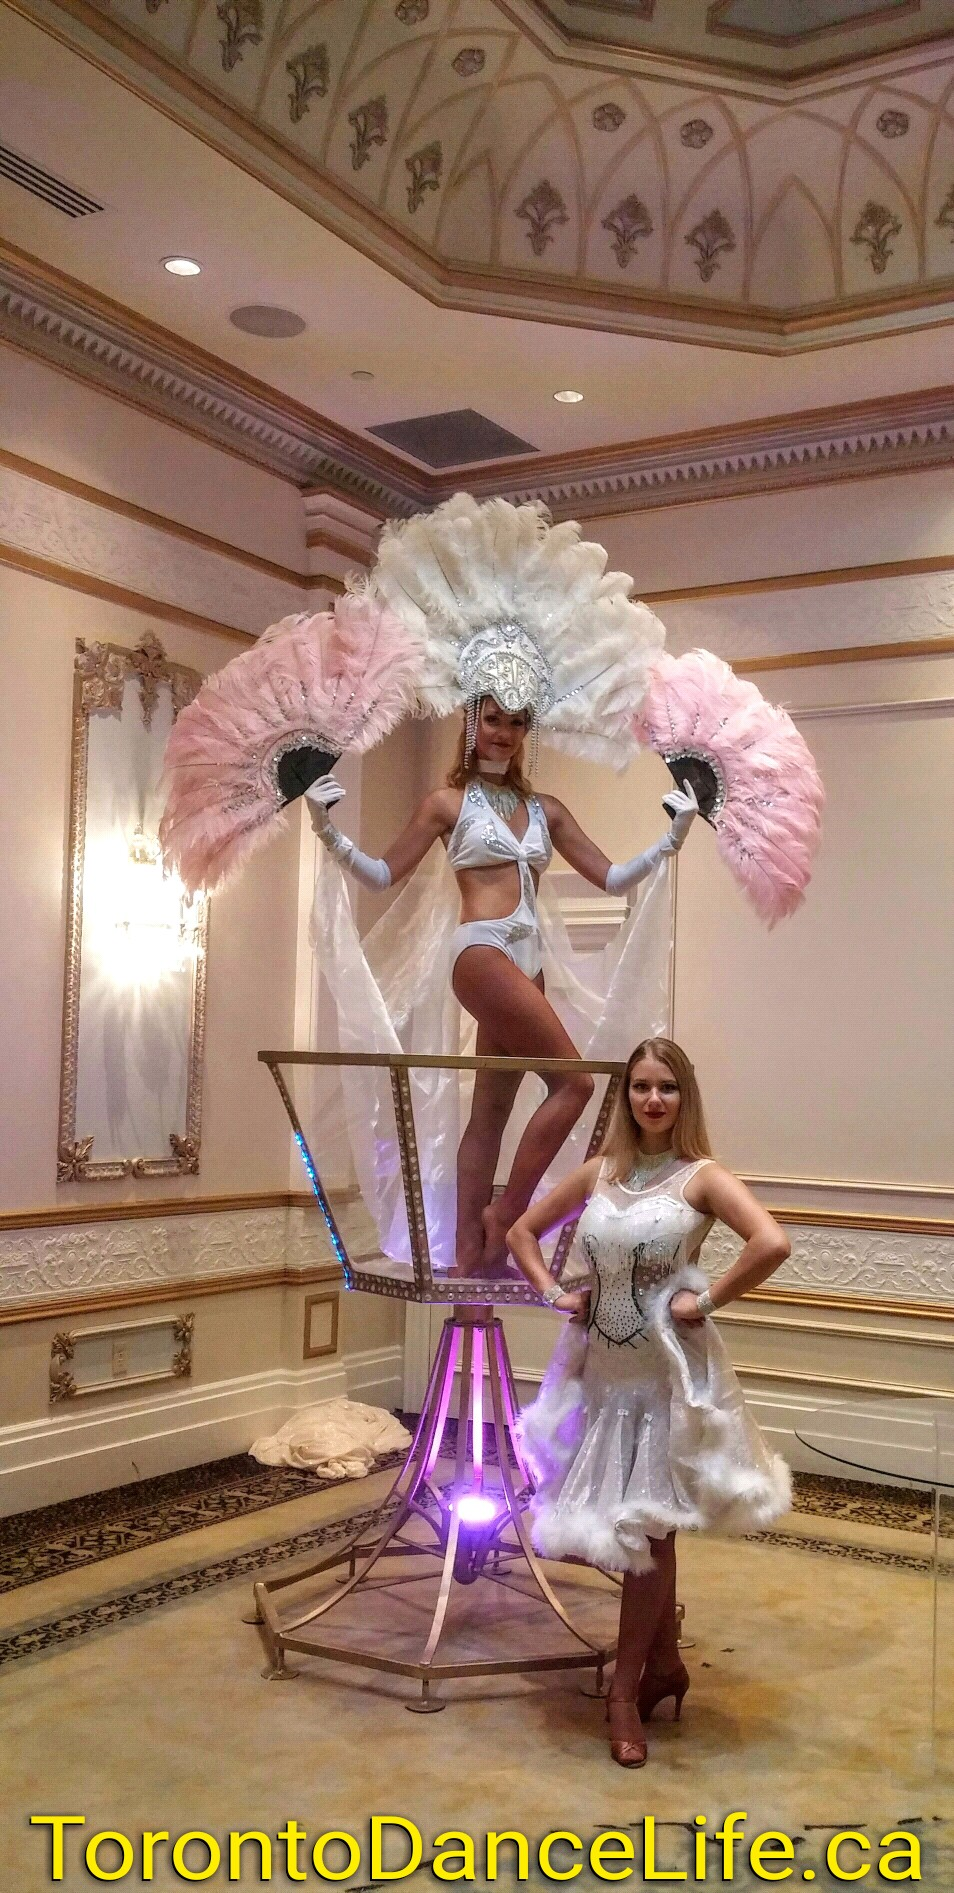 Giant Martini Glass Performer/ Champagne Glass